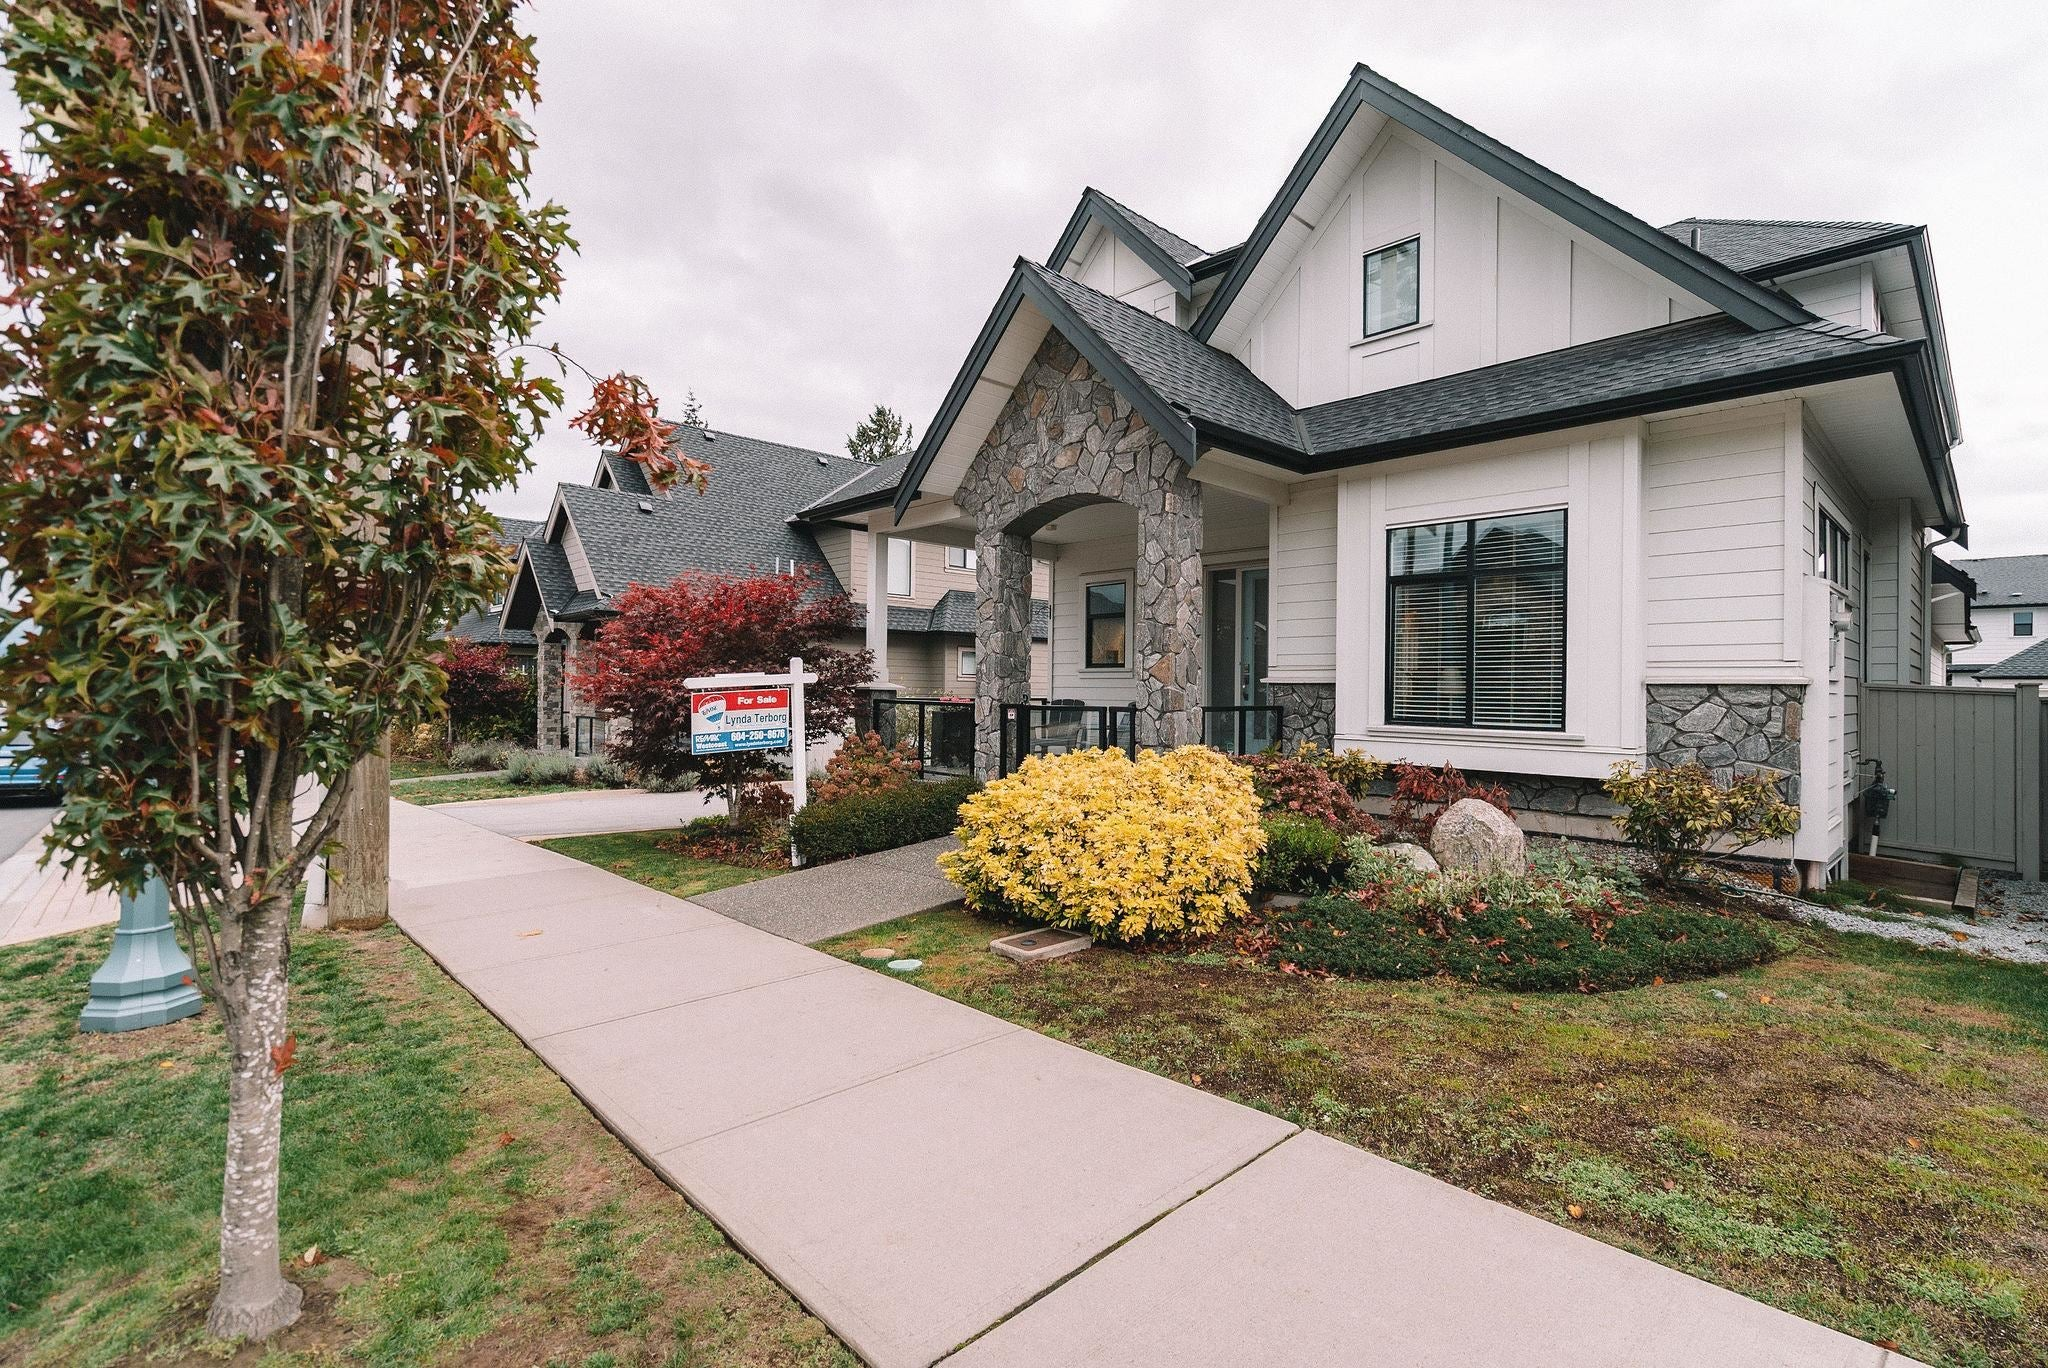 2578 164 STREET - Grandview Surrey House/Single Family for sale, 4 Bedrooms (R2629098)